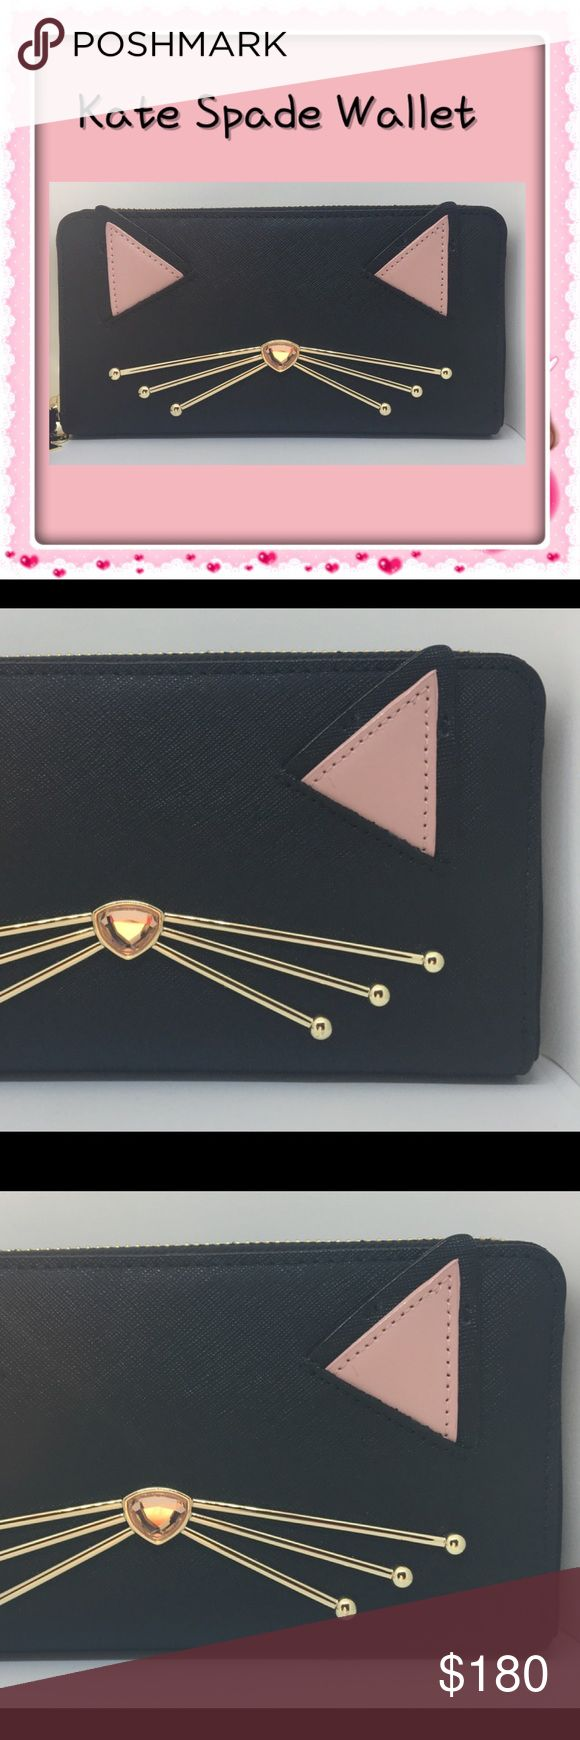 Kate Spade Jazz Things Up Wallet Beautiful NWT Kate Spade Jazz Things Up wallet. Gorgeous! $199 MSRP - 100% leather coated with polyurethane. Has pockets on both sides and zipper pouch in the middle. Comes from a smoke-free home. Please see my other items. Bundle & save! kate spade Bags Wallets